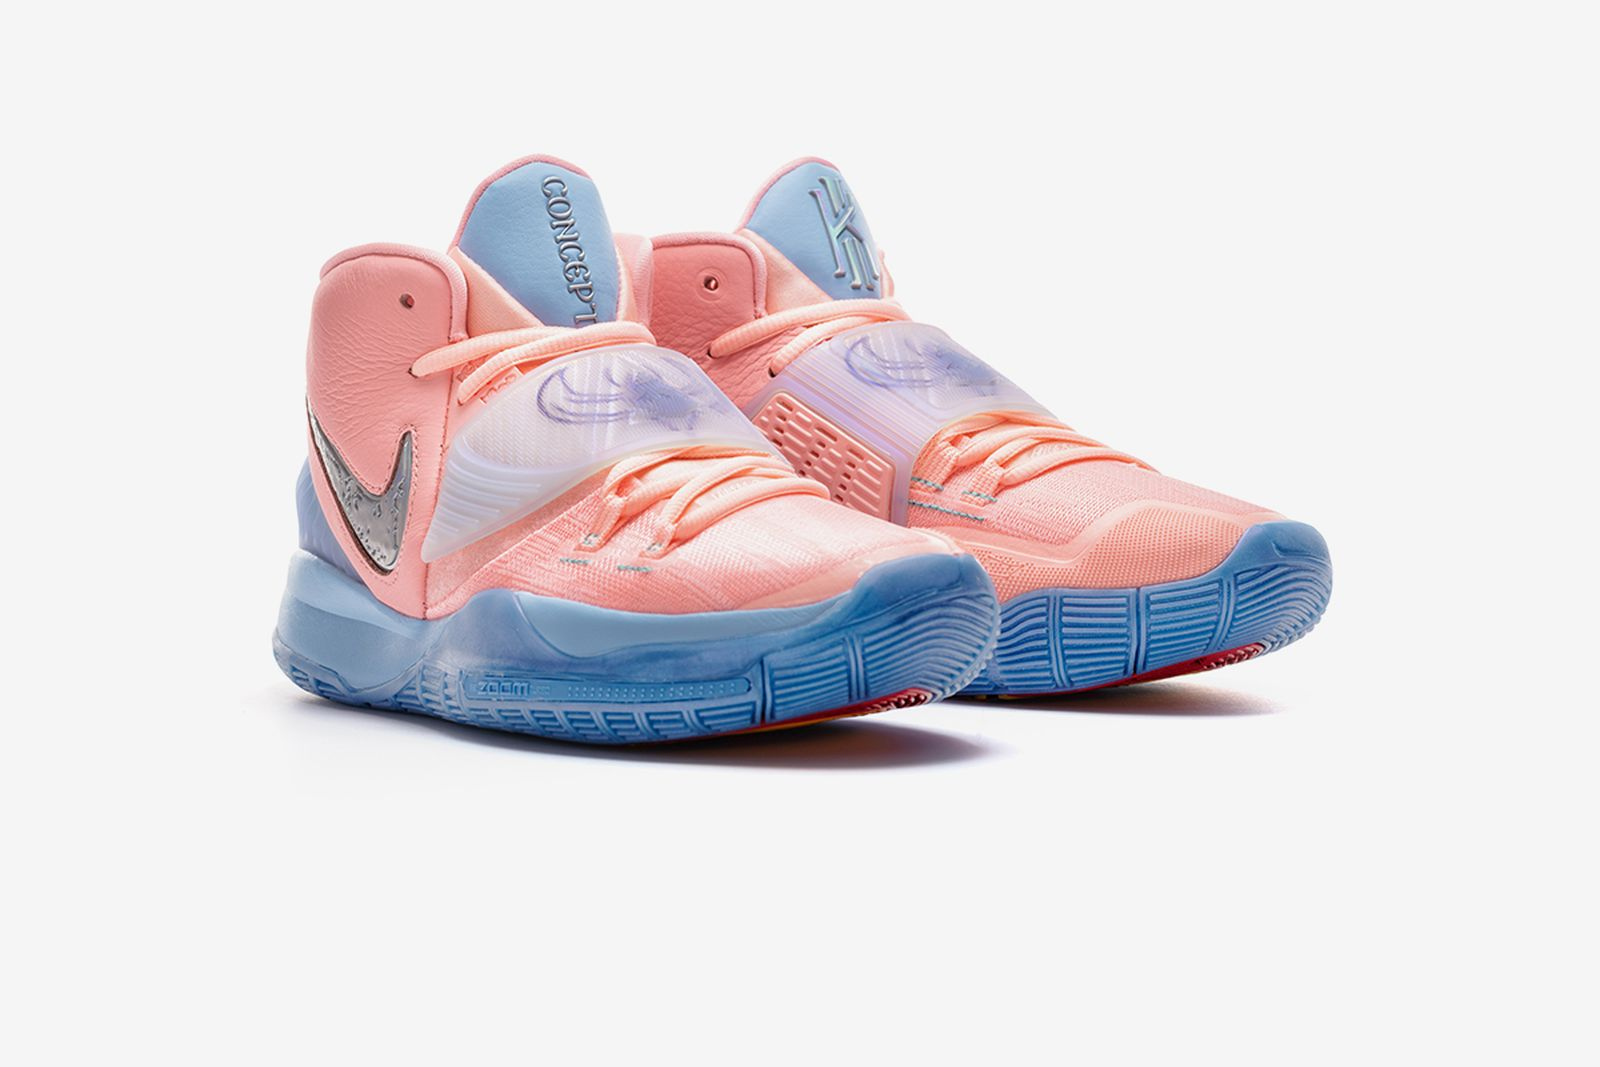 concepts-nike-kyrie-6-release-date-price-20